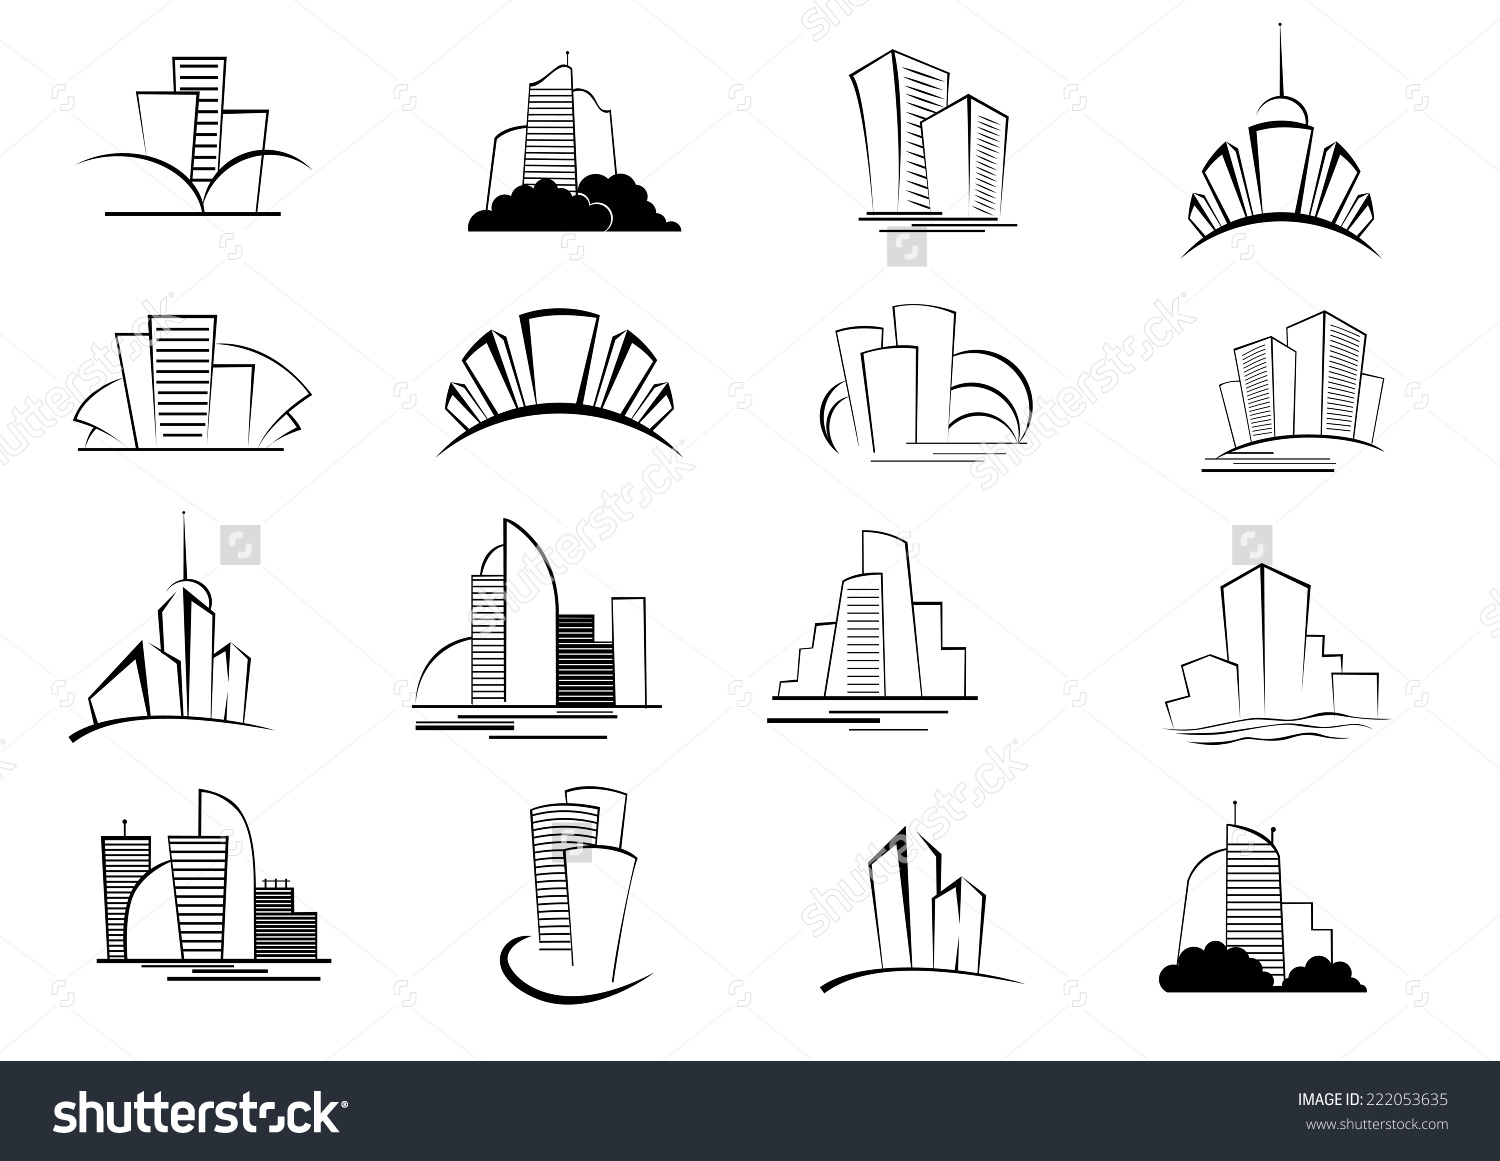 Building blocks clipart blank outline image royalty free Set Stylized Outline Building Architectural Icons Stock Vector ... image royalty free